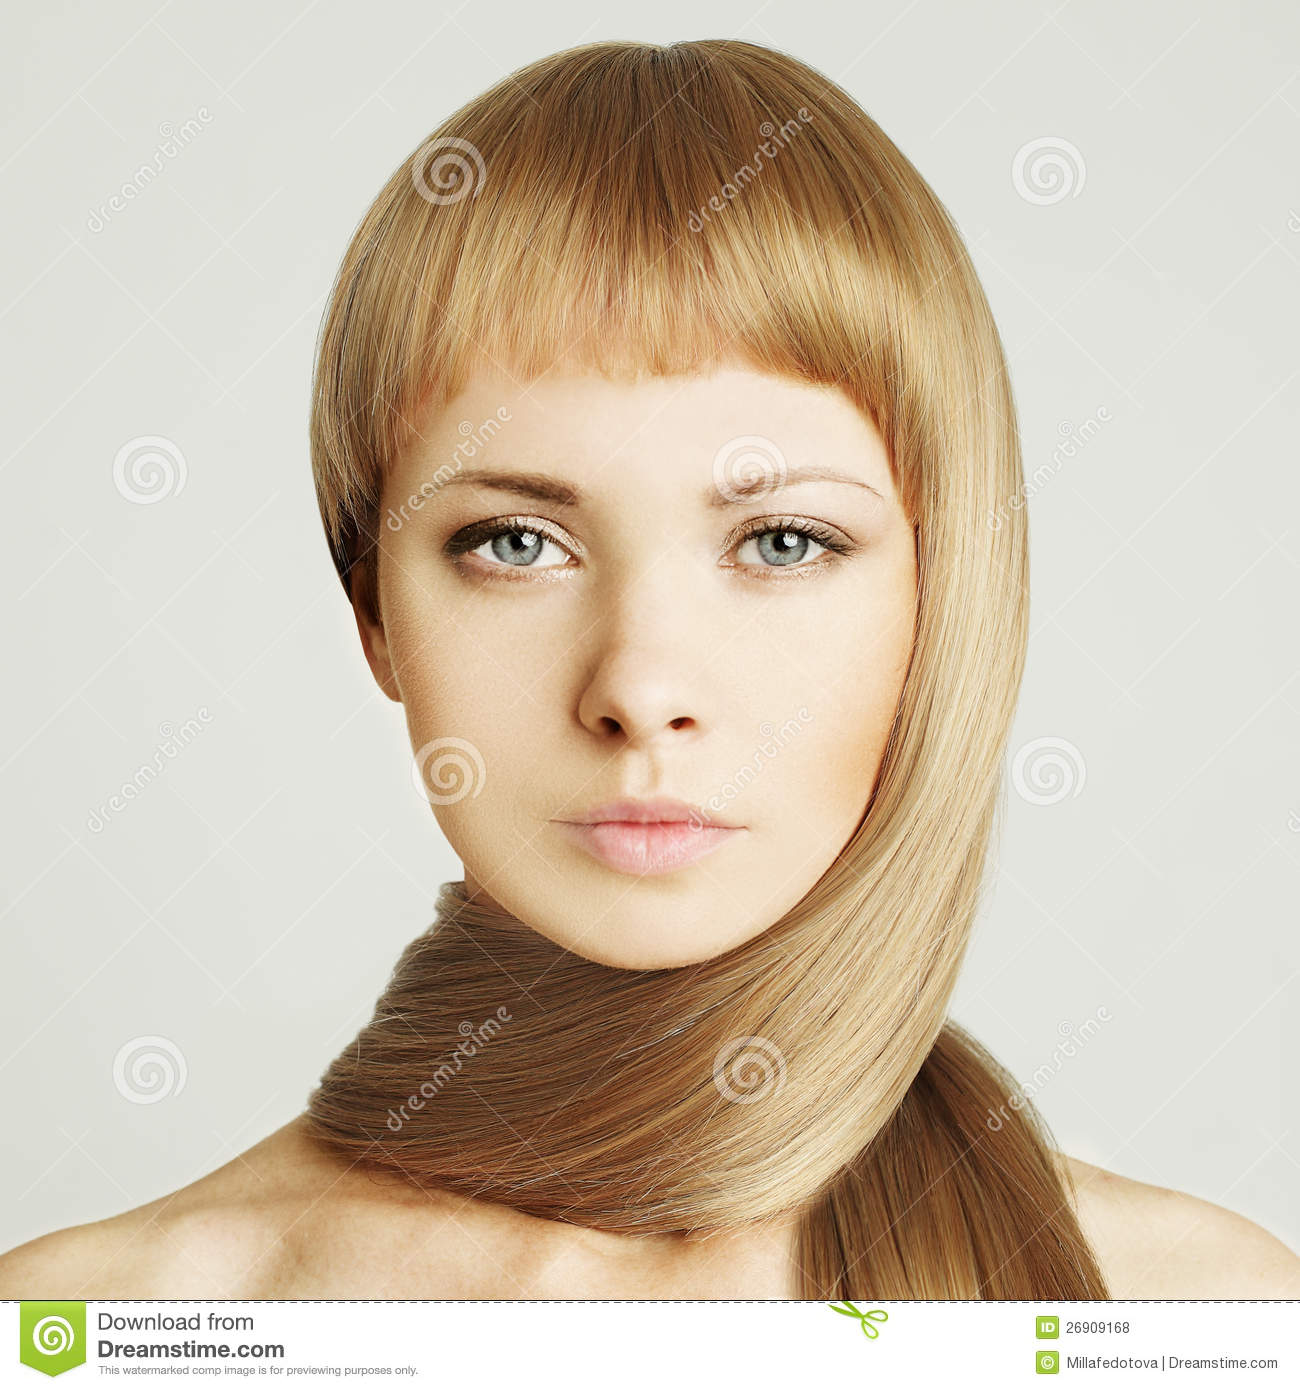 Woman in a beauty salon royalty free stock photo for Photo salon